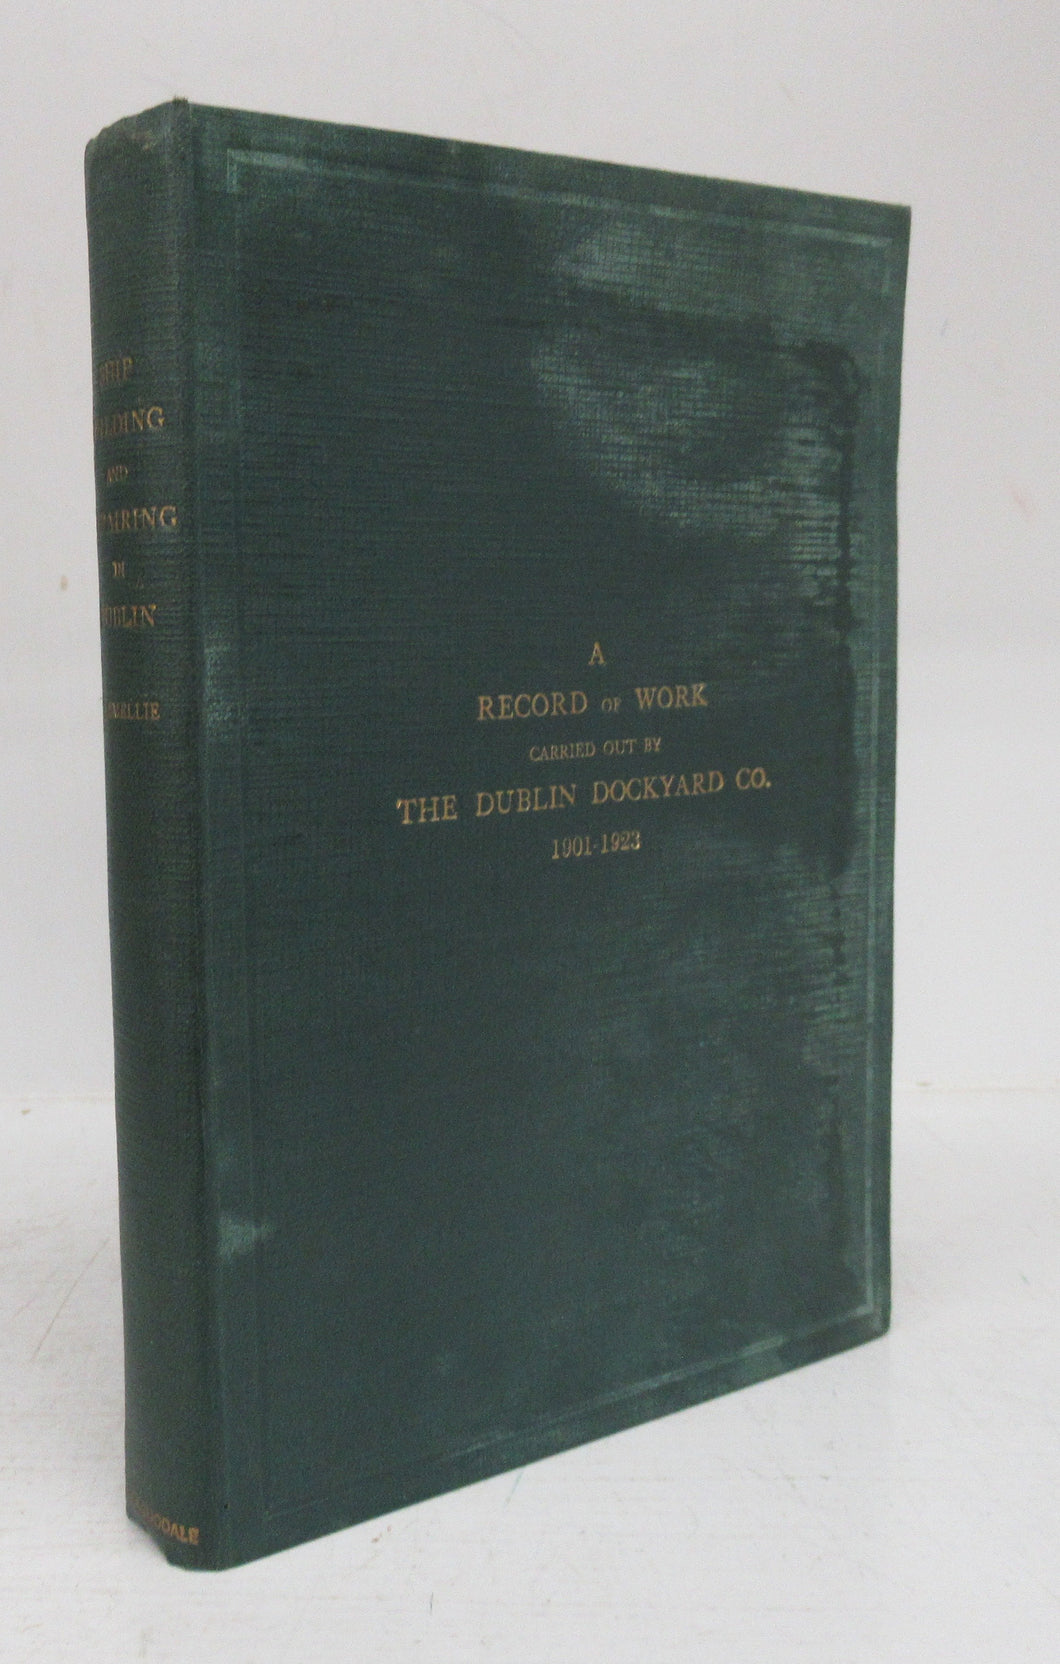 Shipbuilding and Repairing in Dublin: A Record of Work carried out by the Dublin Dockyard Co. 1901-1923